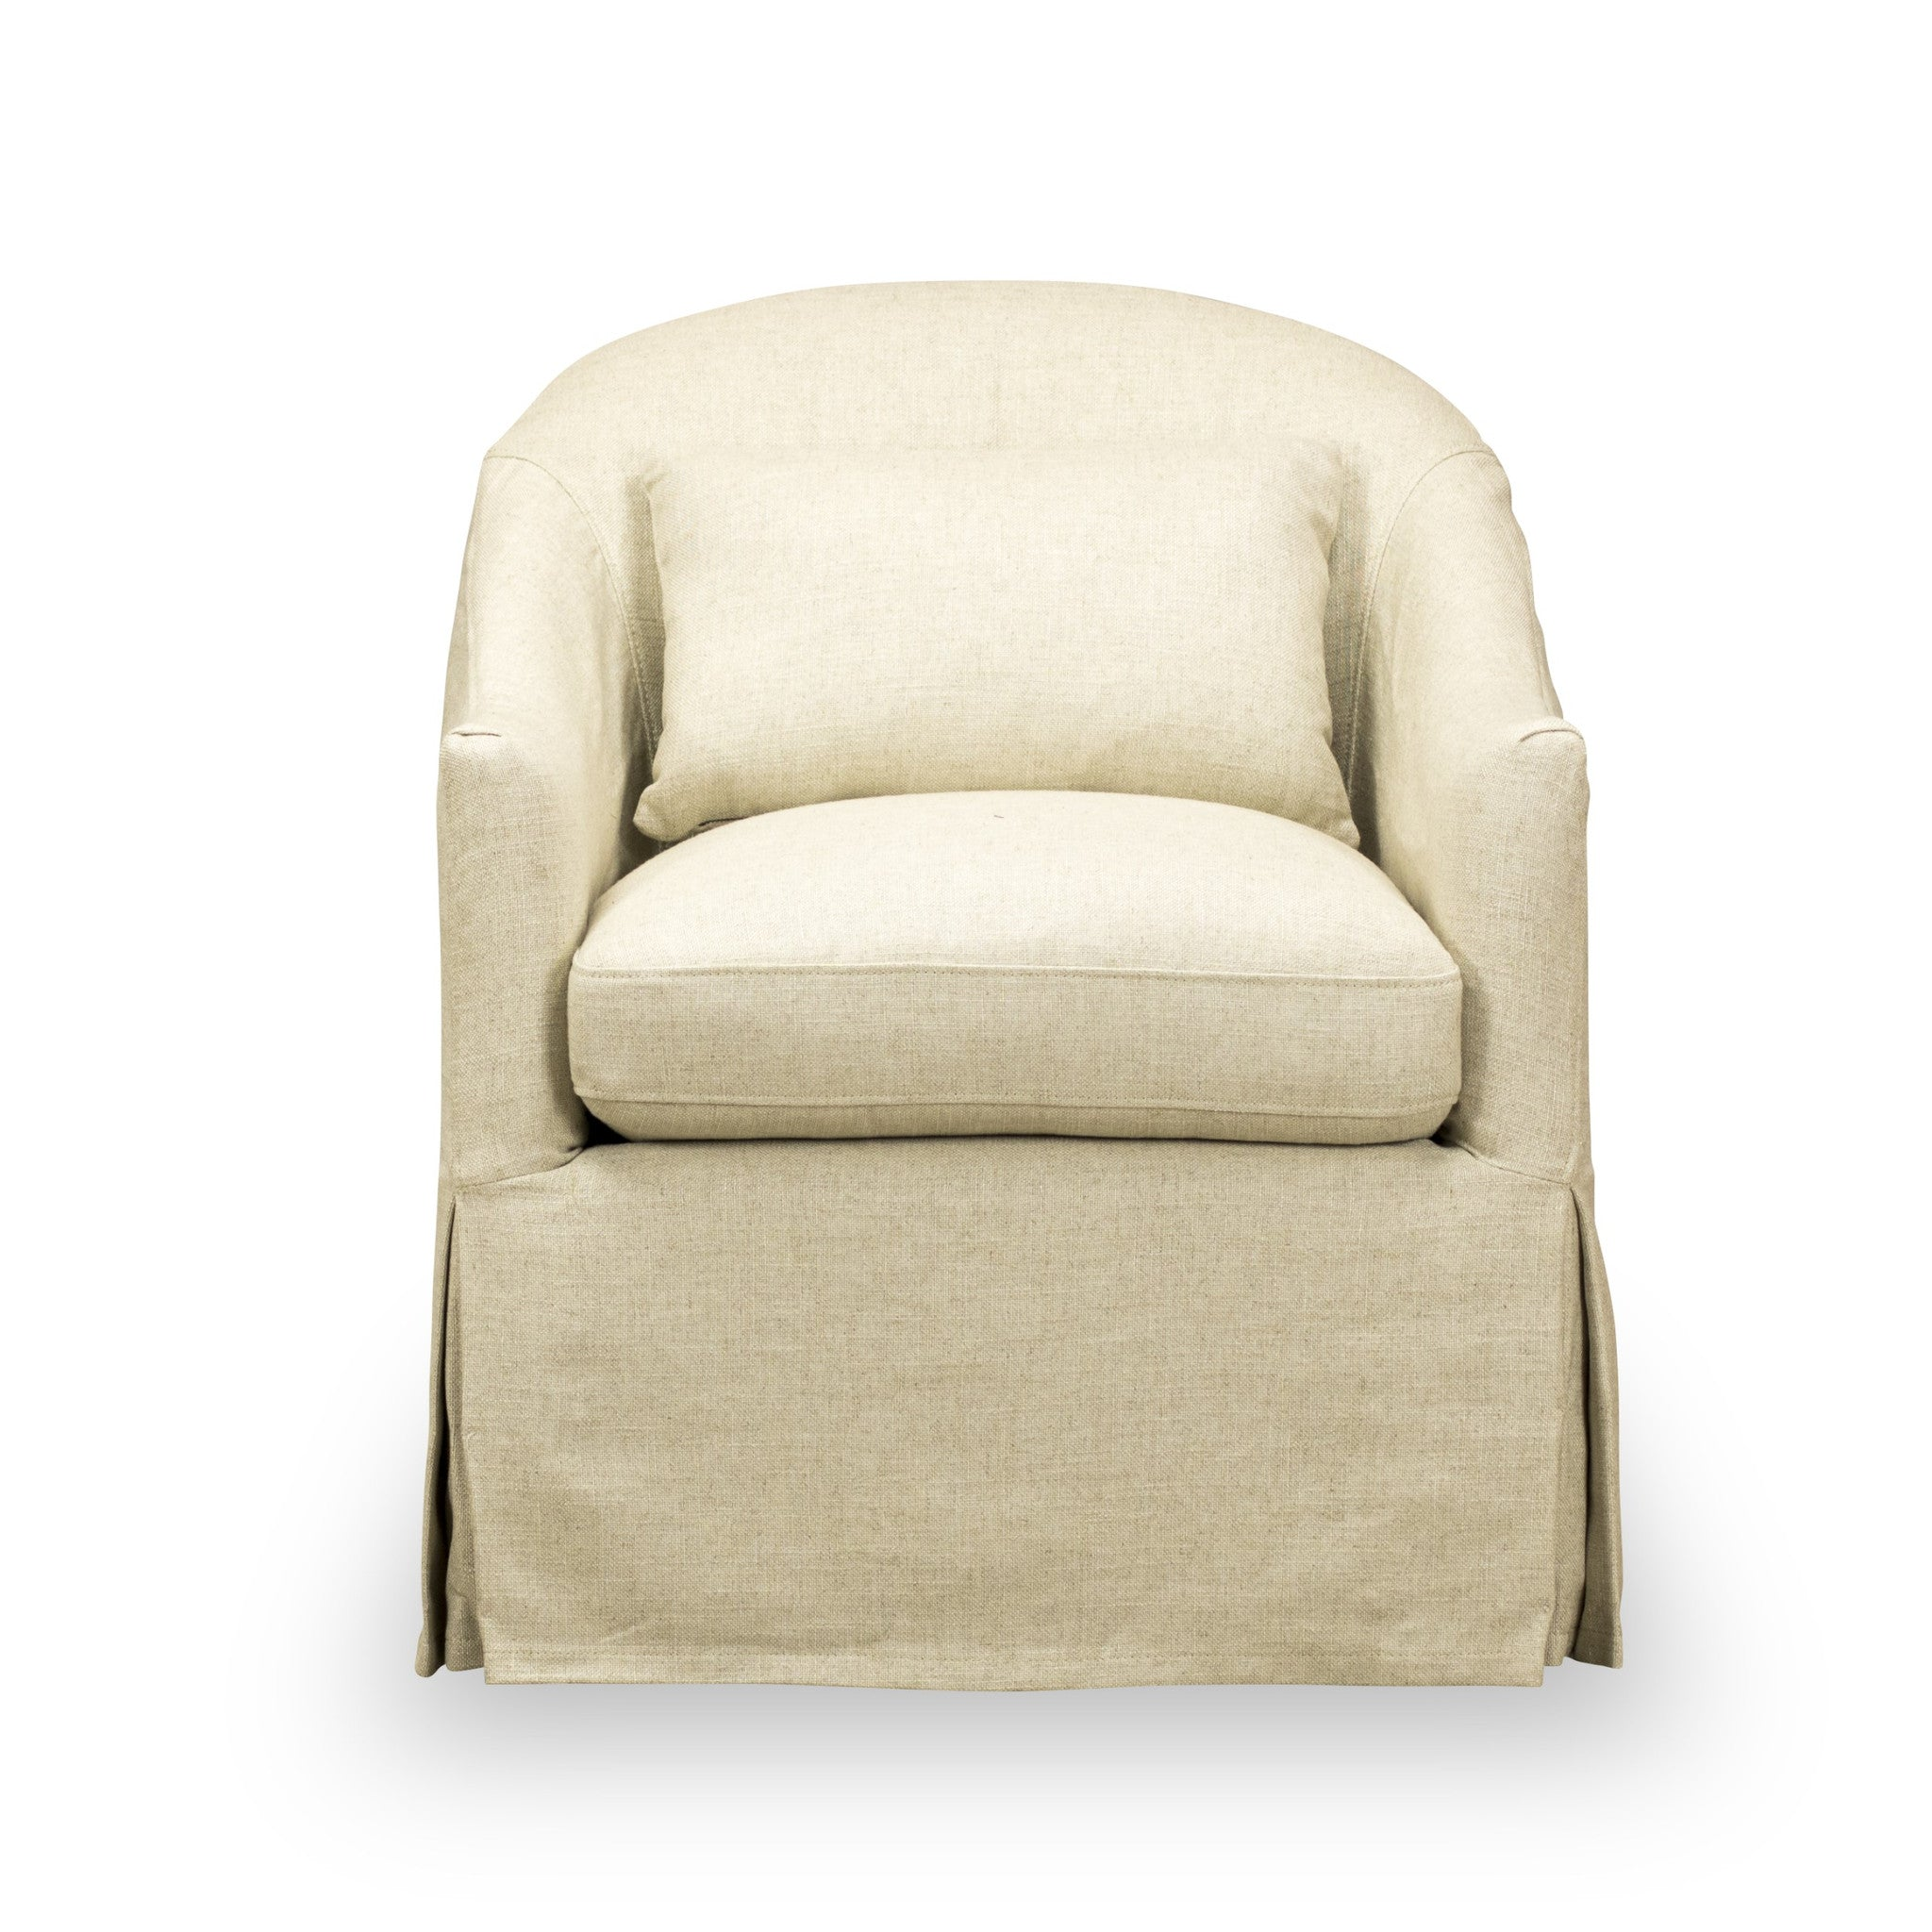 Becky Slipcover Swivel Chair Natural Ecru Spectra Home